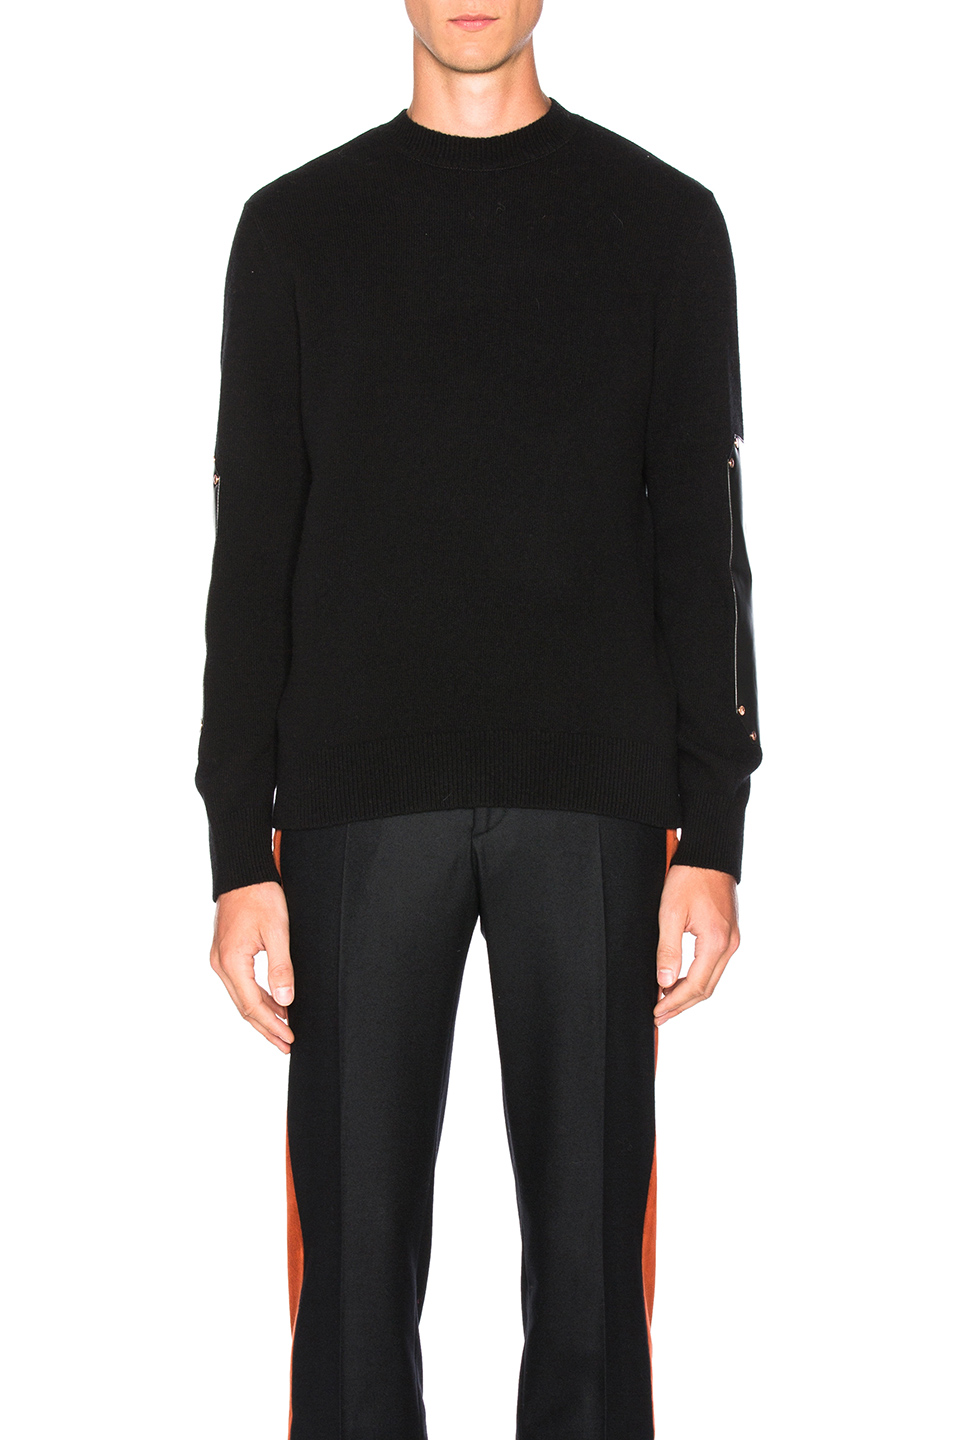 Givenchy Wool & Leather Patches Sweater in Black